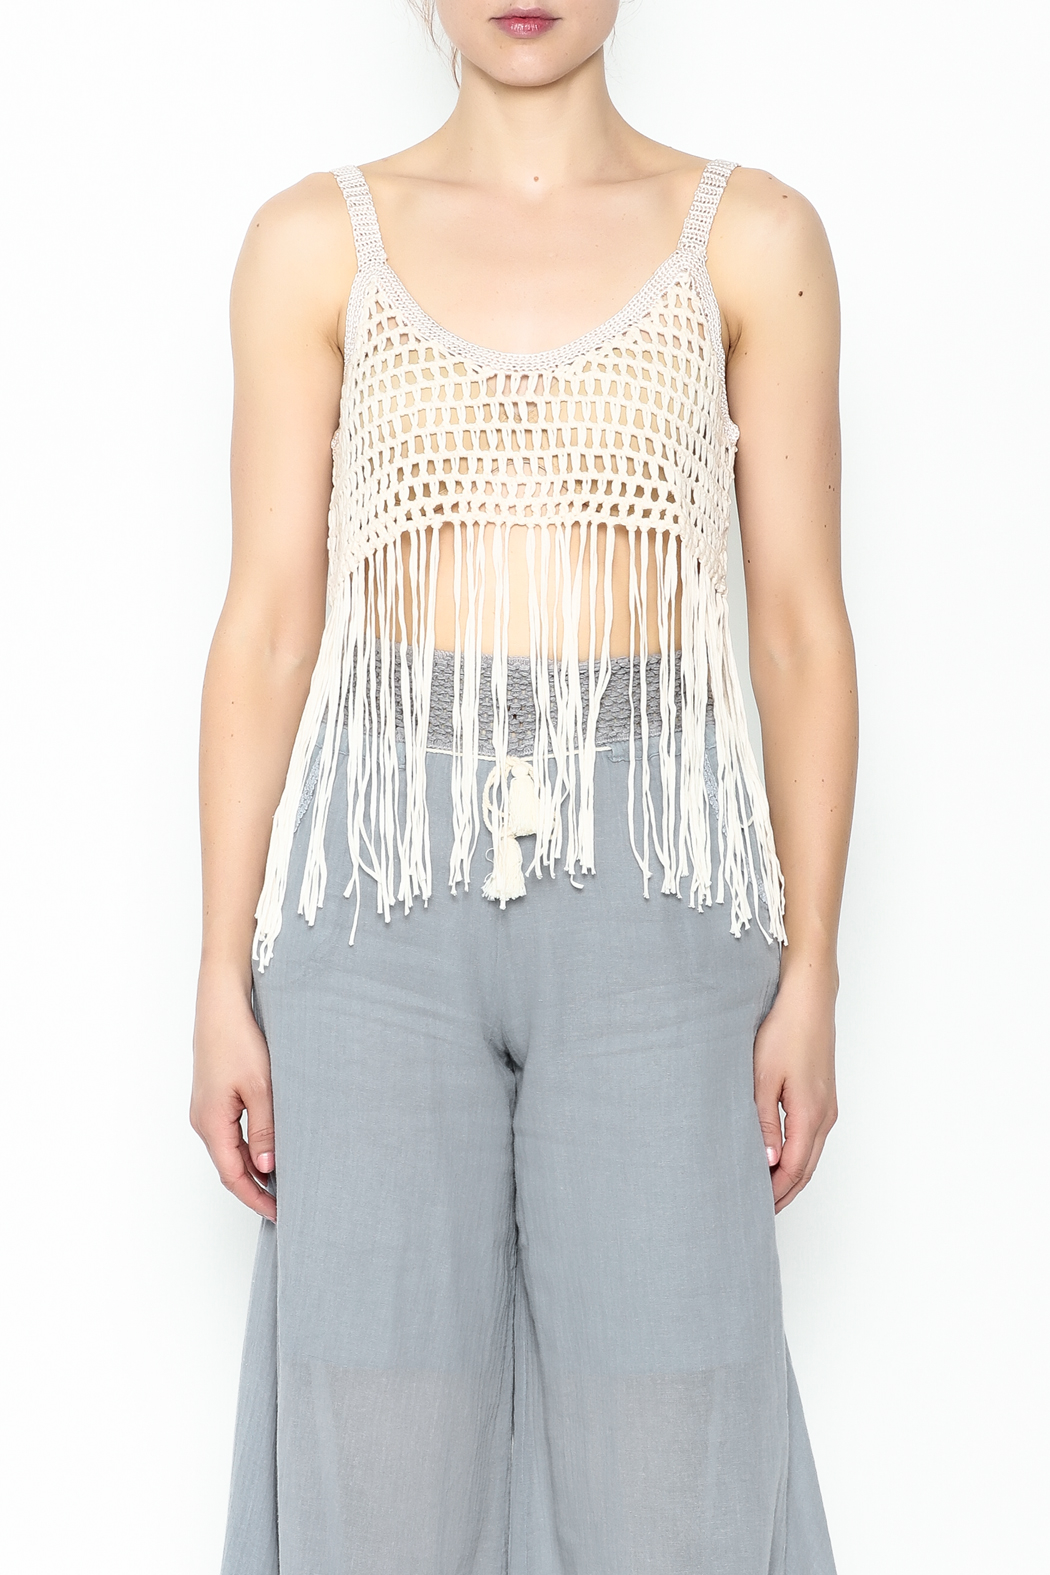 Yumi Fringe Crop Top - Front Full Image